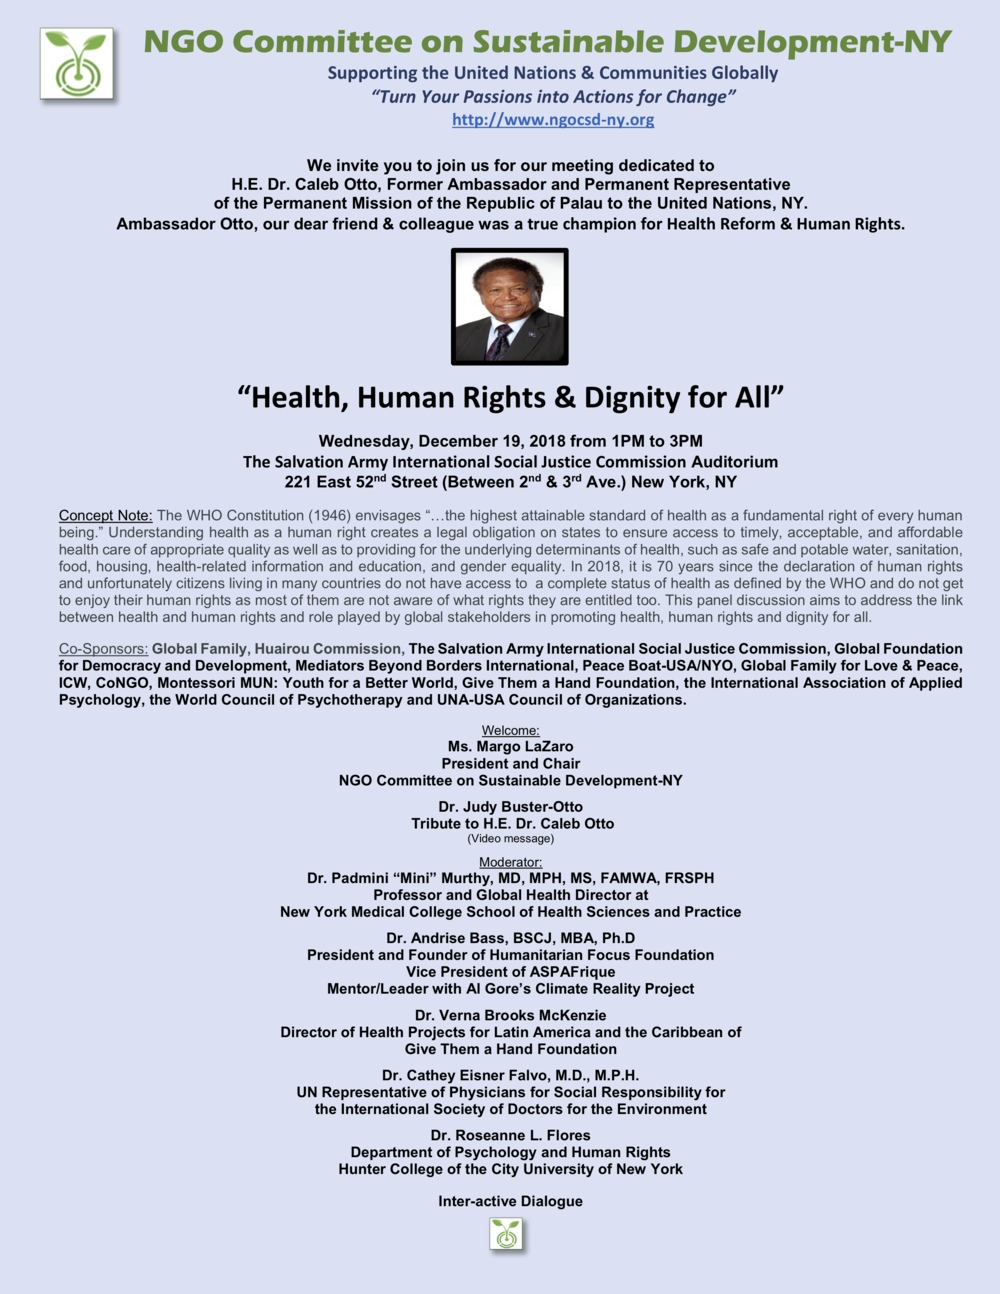 NGOCSD-NY 12-19-18 Health, Human Rights Invitation -B3ab.png